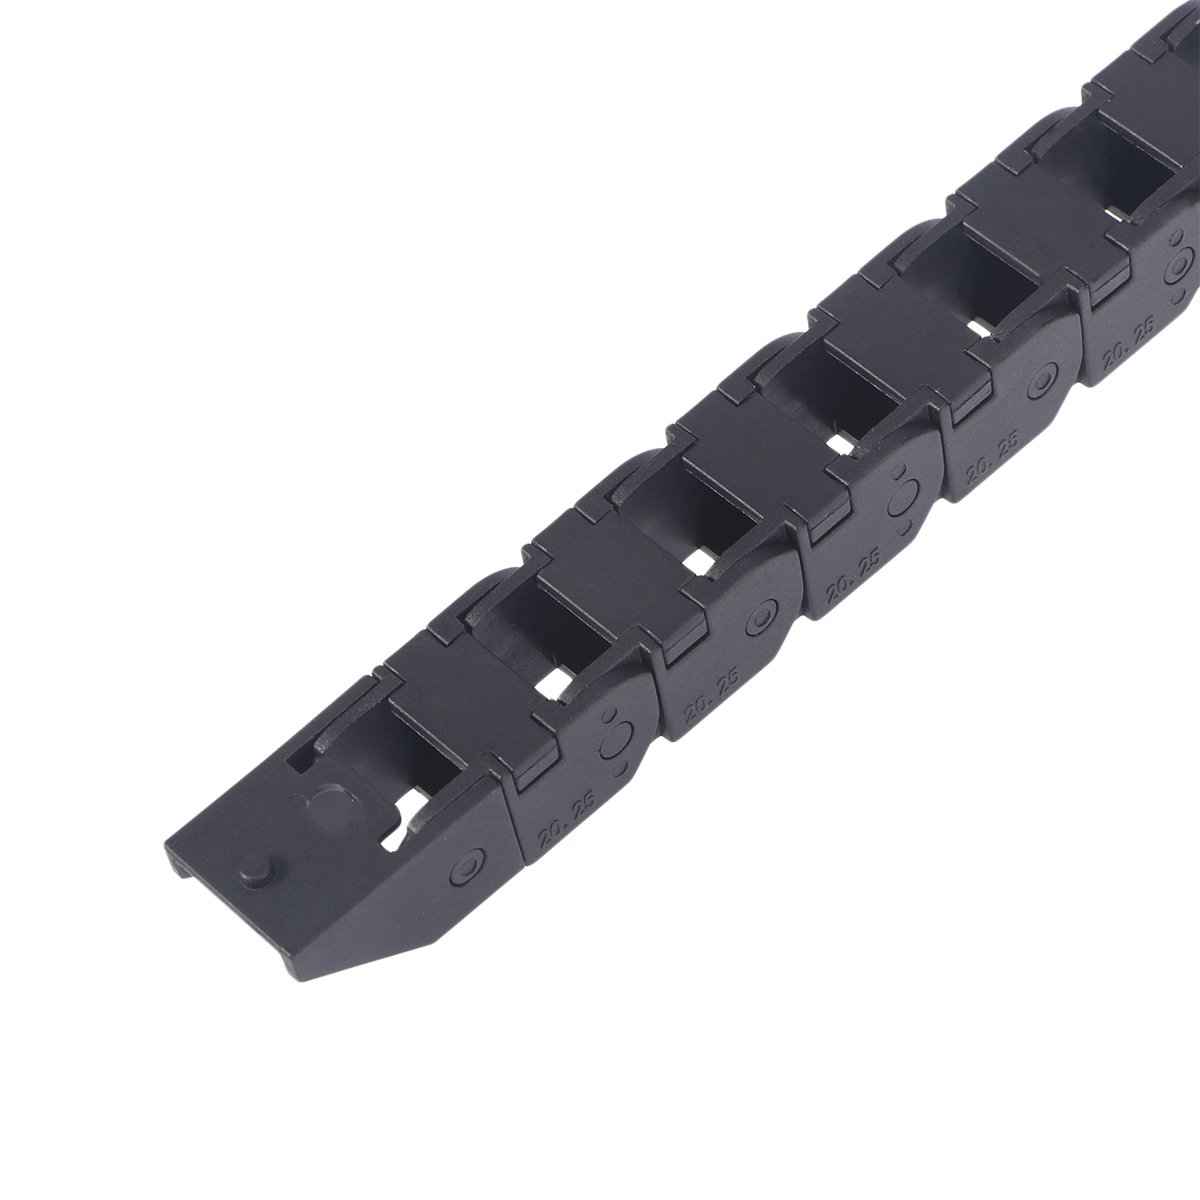 UEETEK Black Plastic Flexible Nested Semi Closed Drag Chain Cable Wire Carrier 455mm x 25mm x 20mm for Electrical Machines